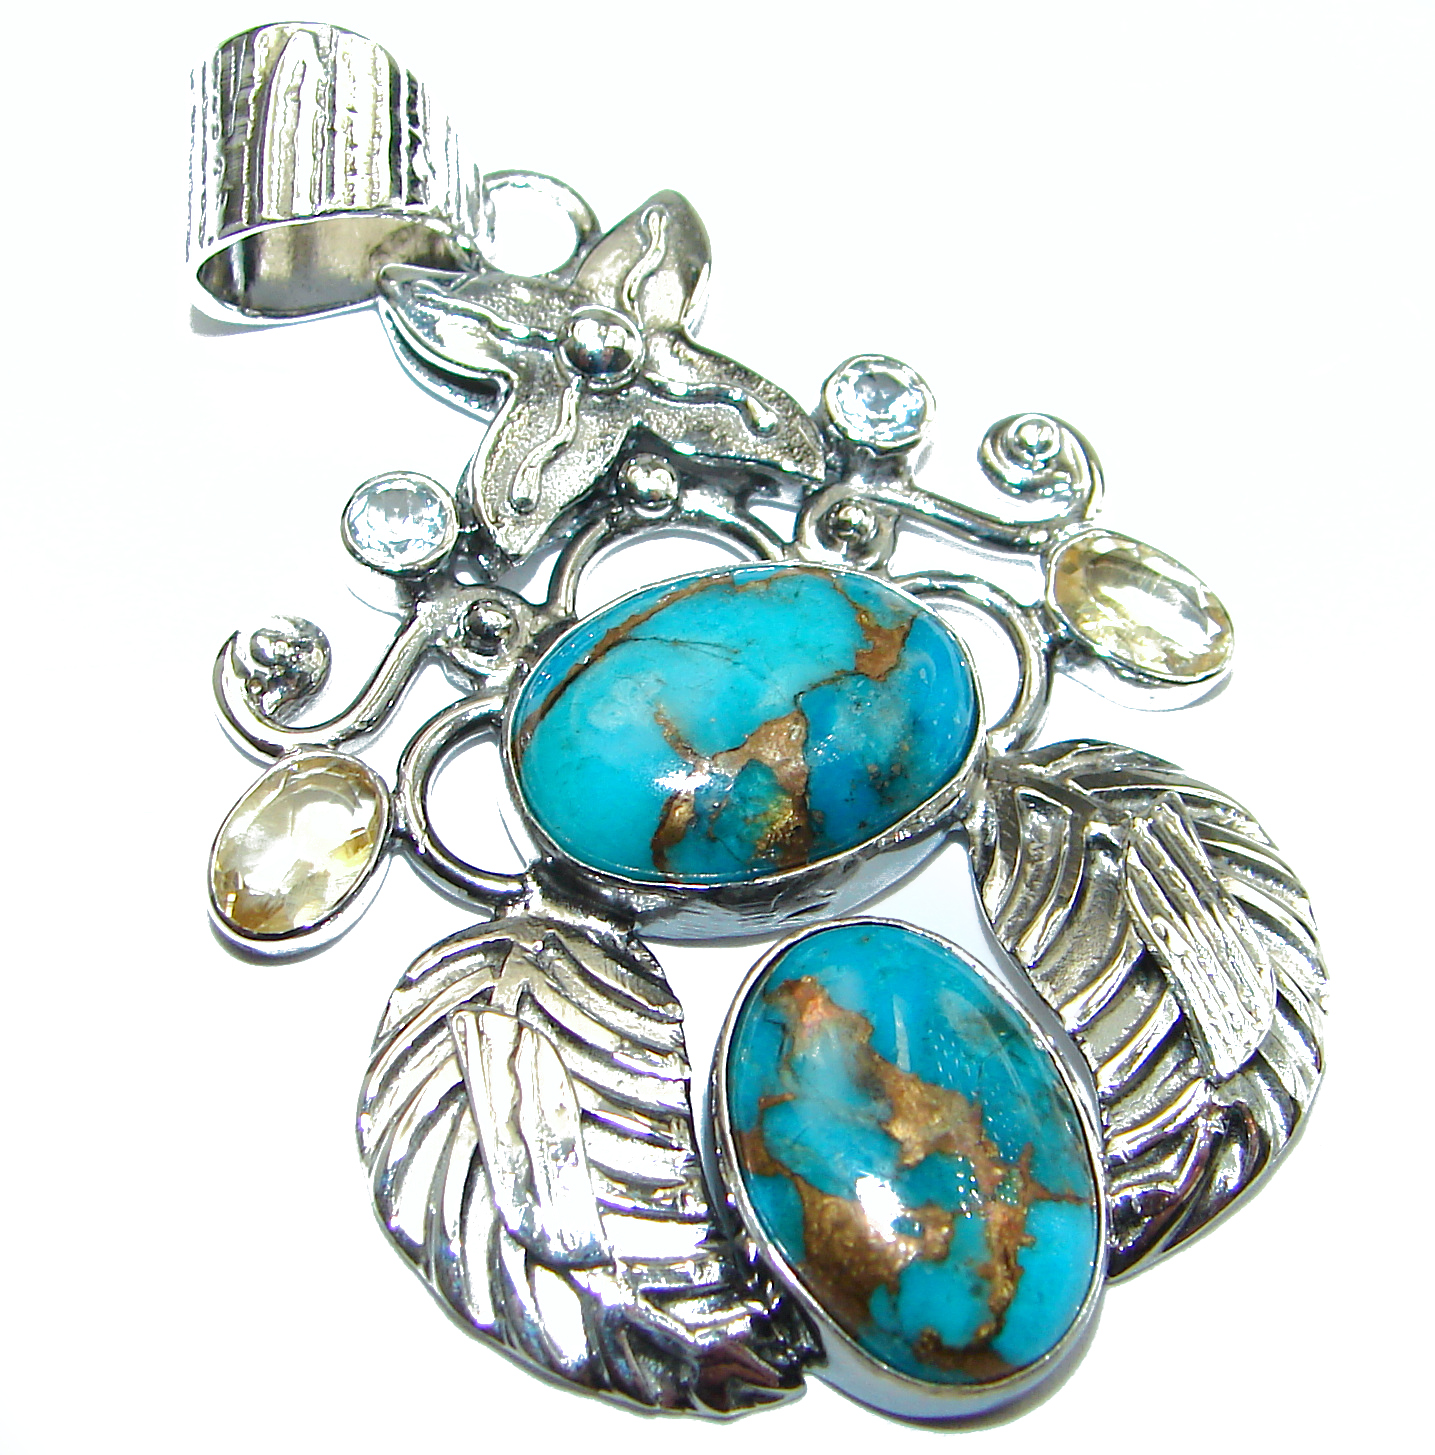 Turquoise with Copper vains .925 Sterling Silver habndmade Pendant